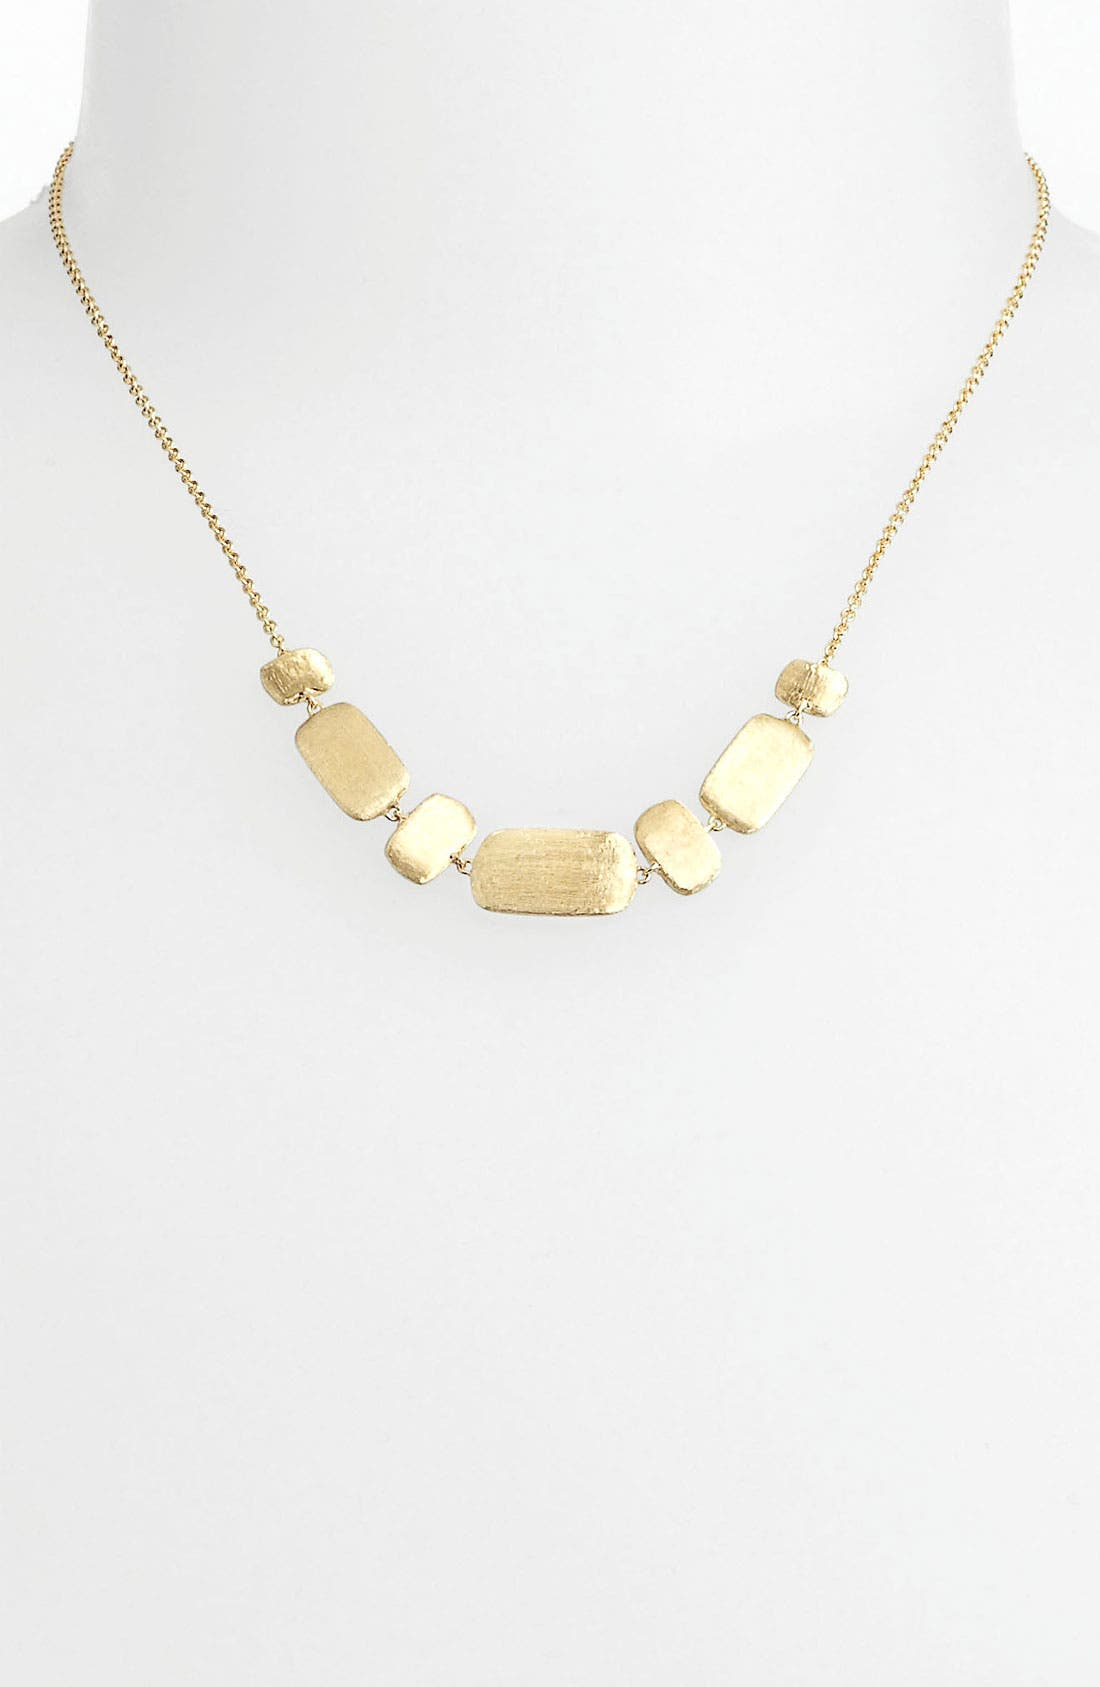 Alternate Image 1 Selected - Marco Bicego 'Murano' Gold Necklace